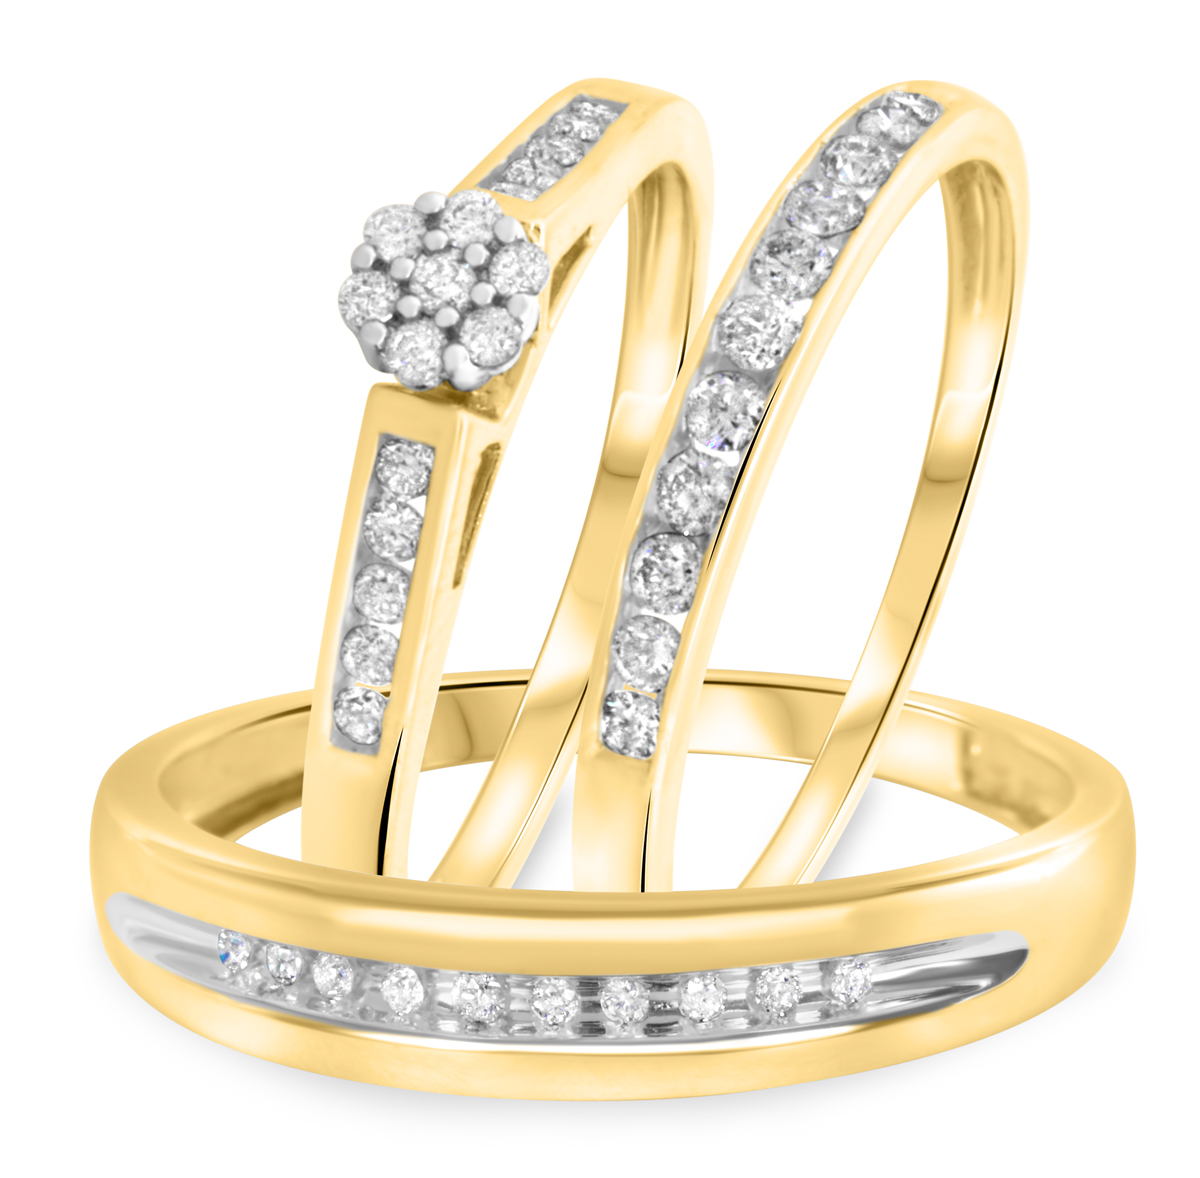 1/2 Carat T.W. Round Cut Diamond Trio Wedding Set 10K Yellow Gold